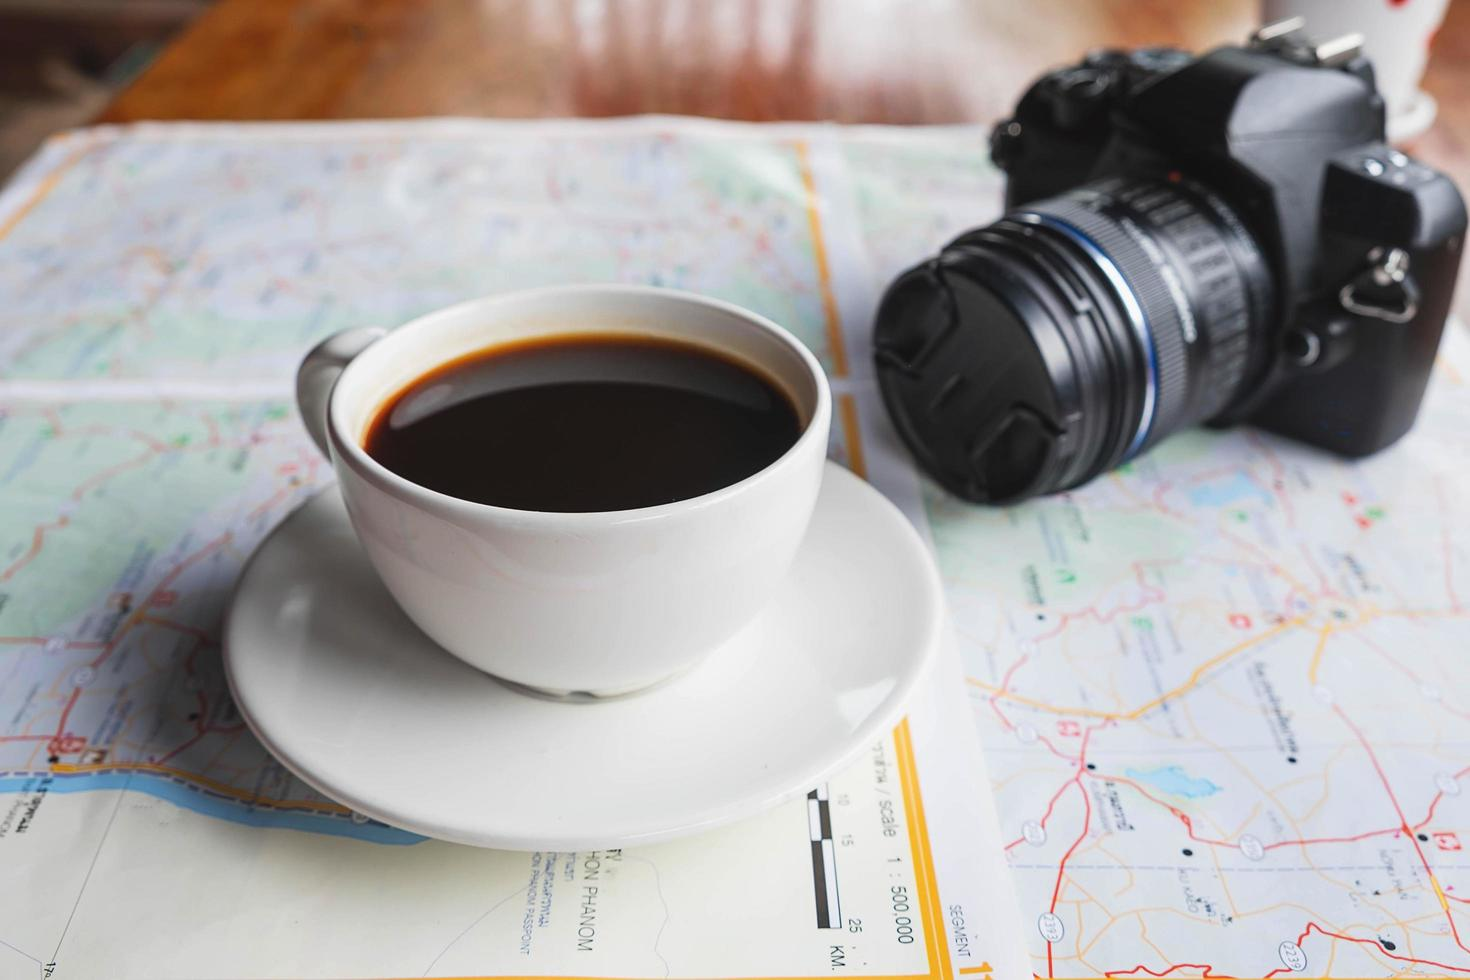 Coffee and a camera on a map photo